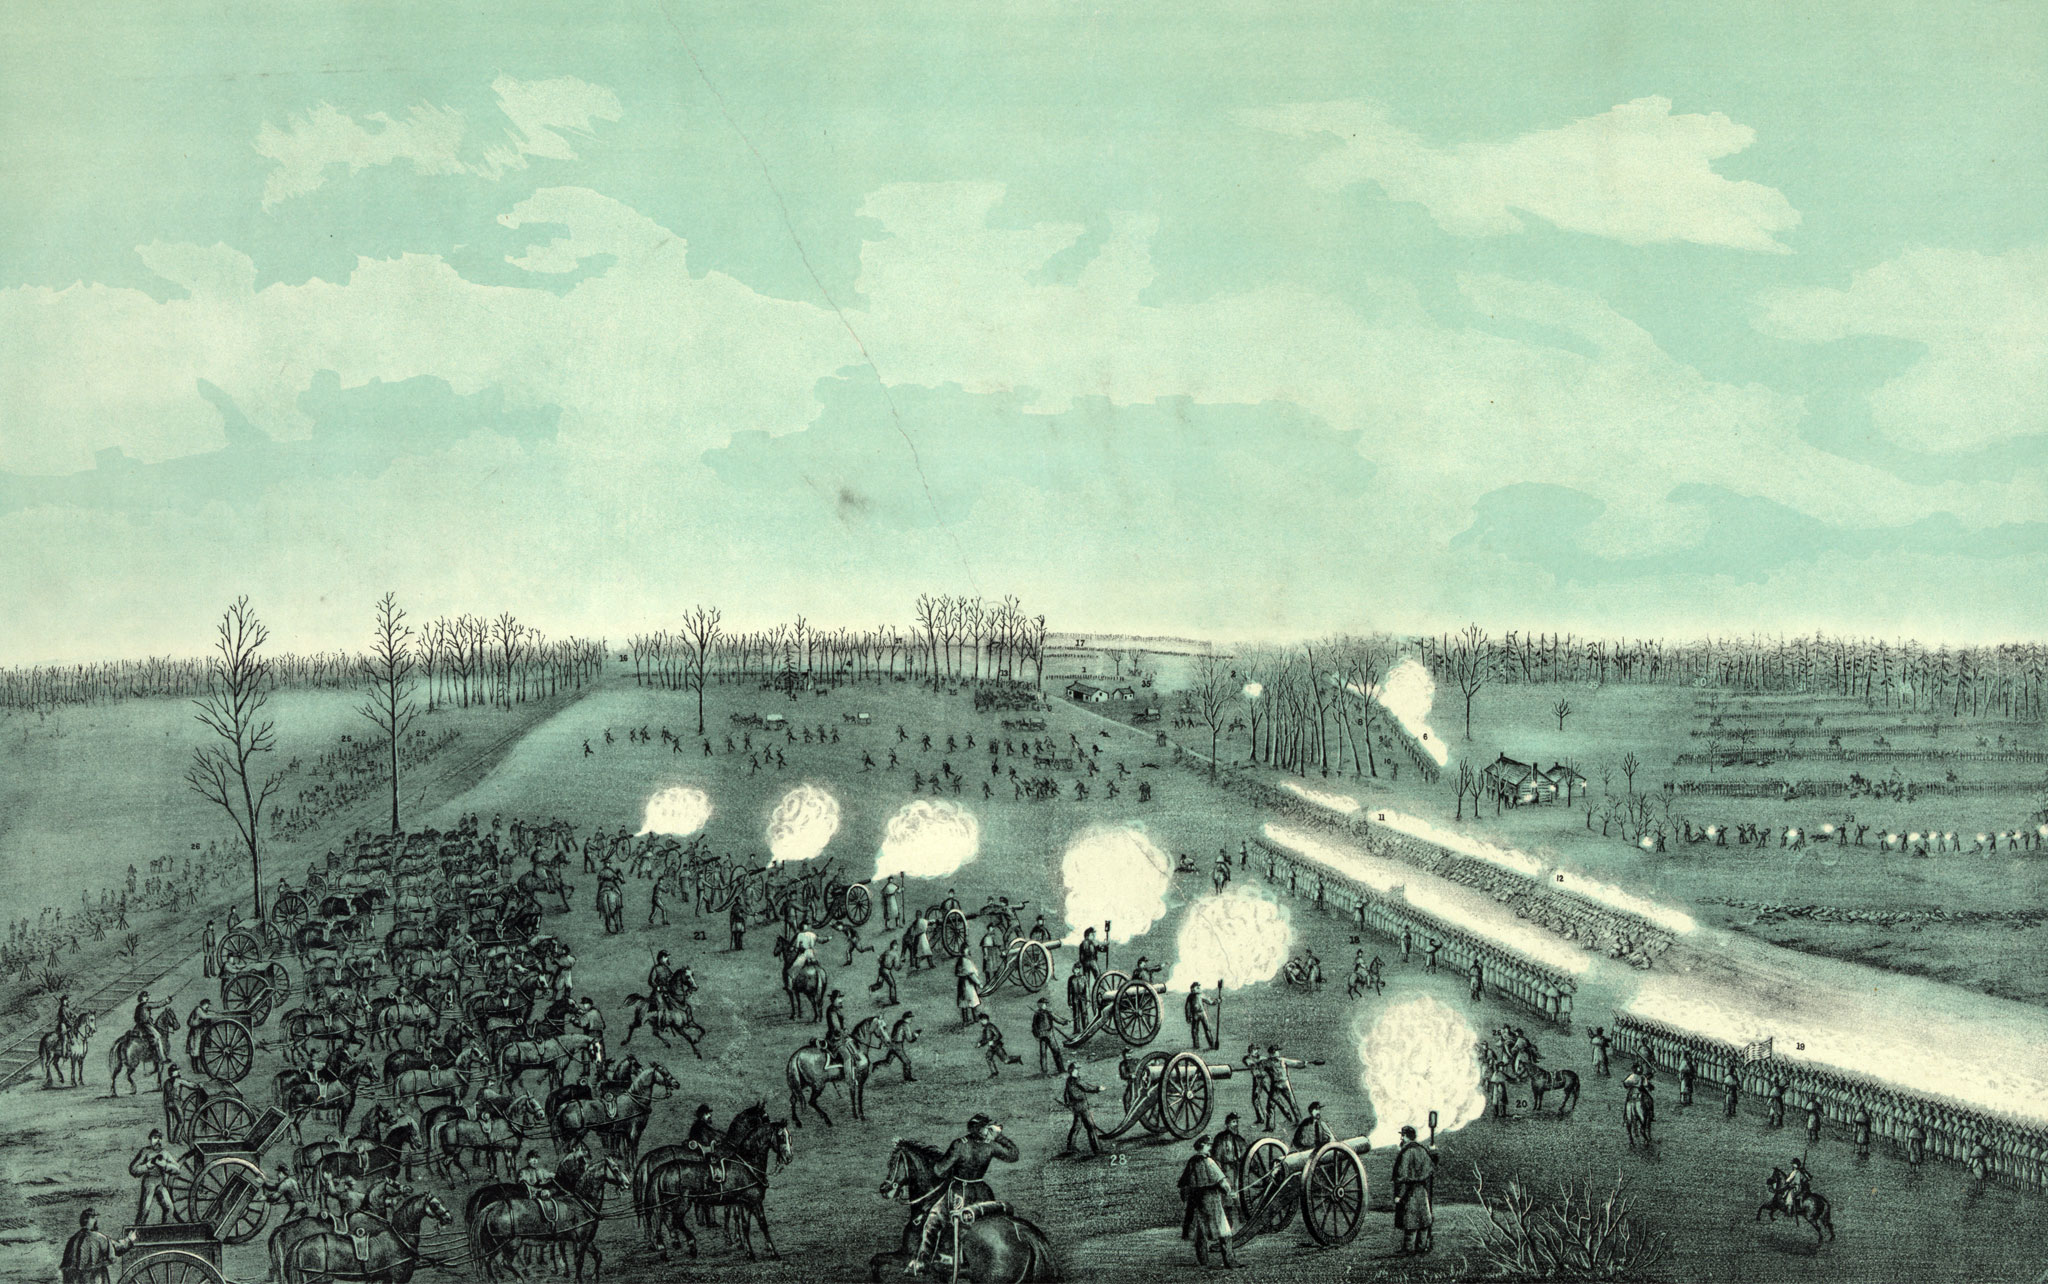 """""""Battle of Stone River of Murfreesboro,"""" by W.C. Reynolds. Library of Congress."""